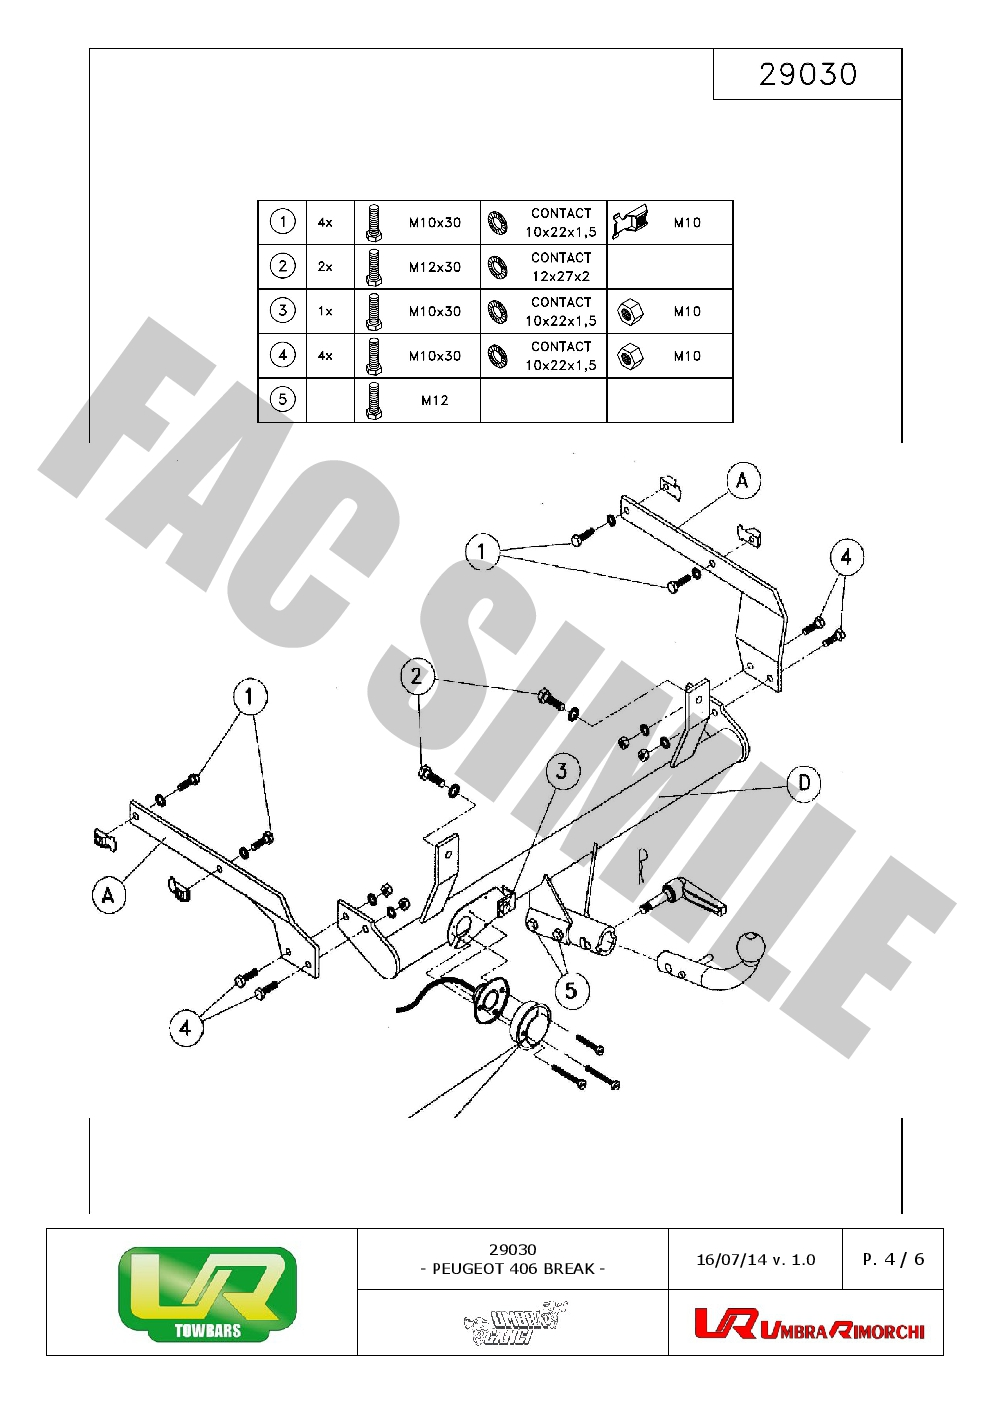 Peugeot 406 Towbar Wiring Diagram Library Faults Detachable 7 Pin Kit Bypass Relay